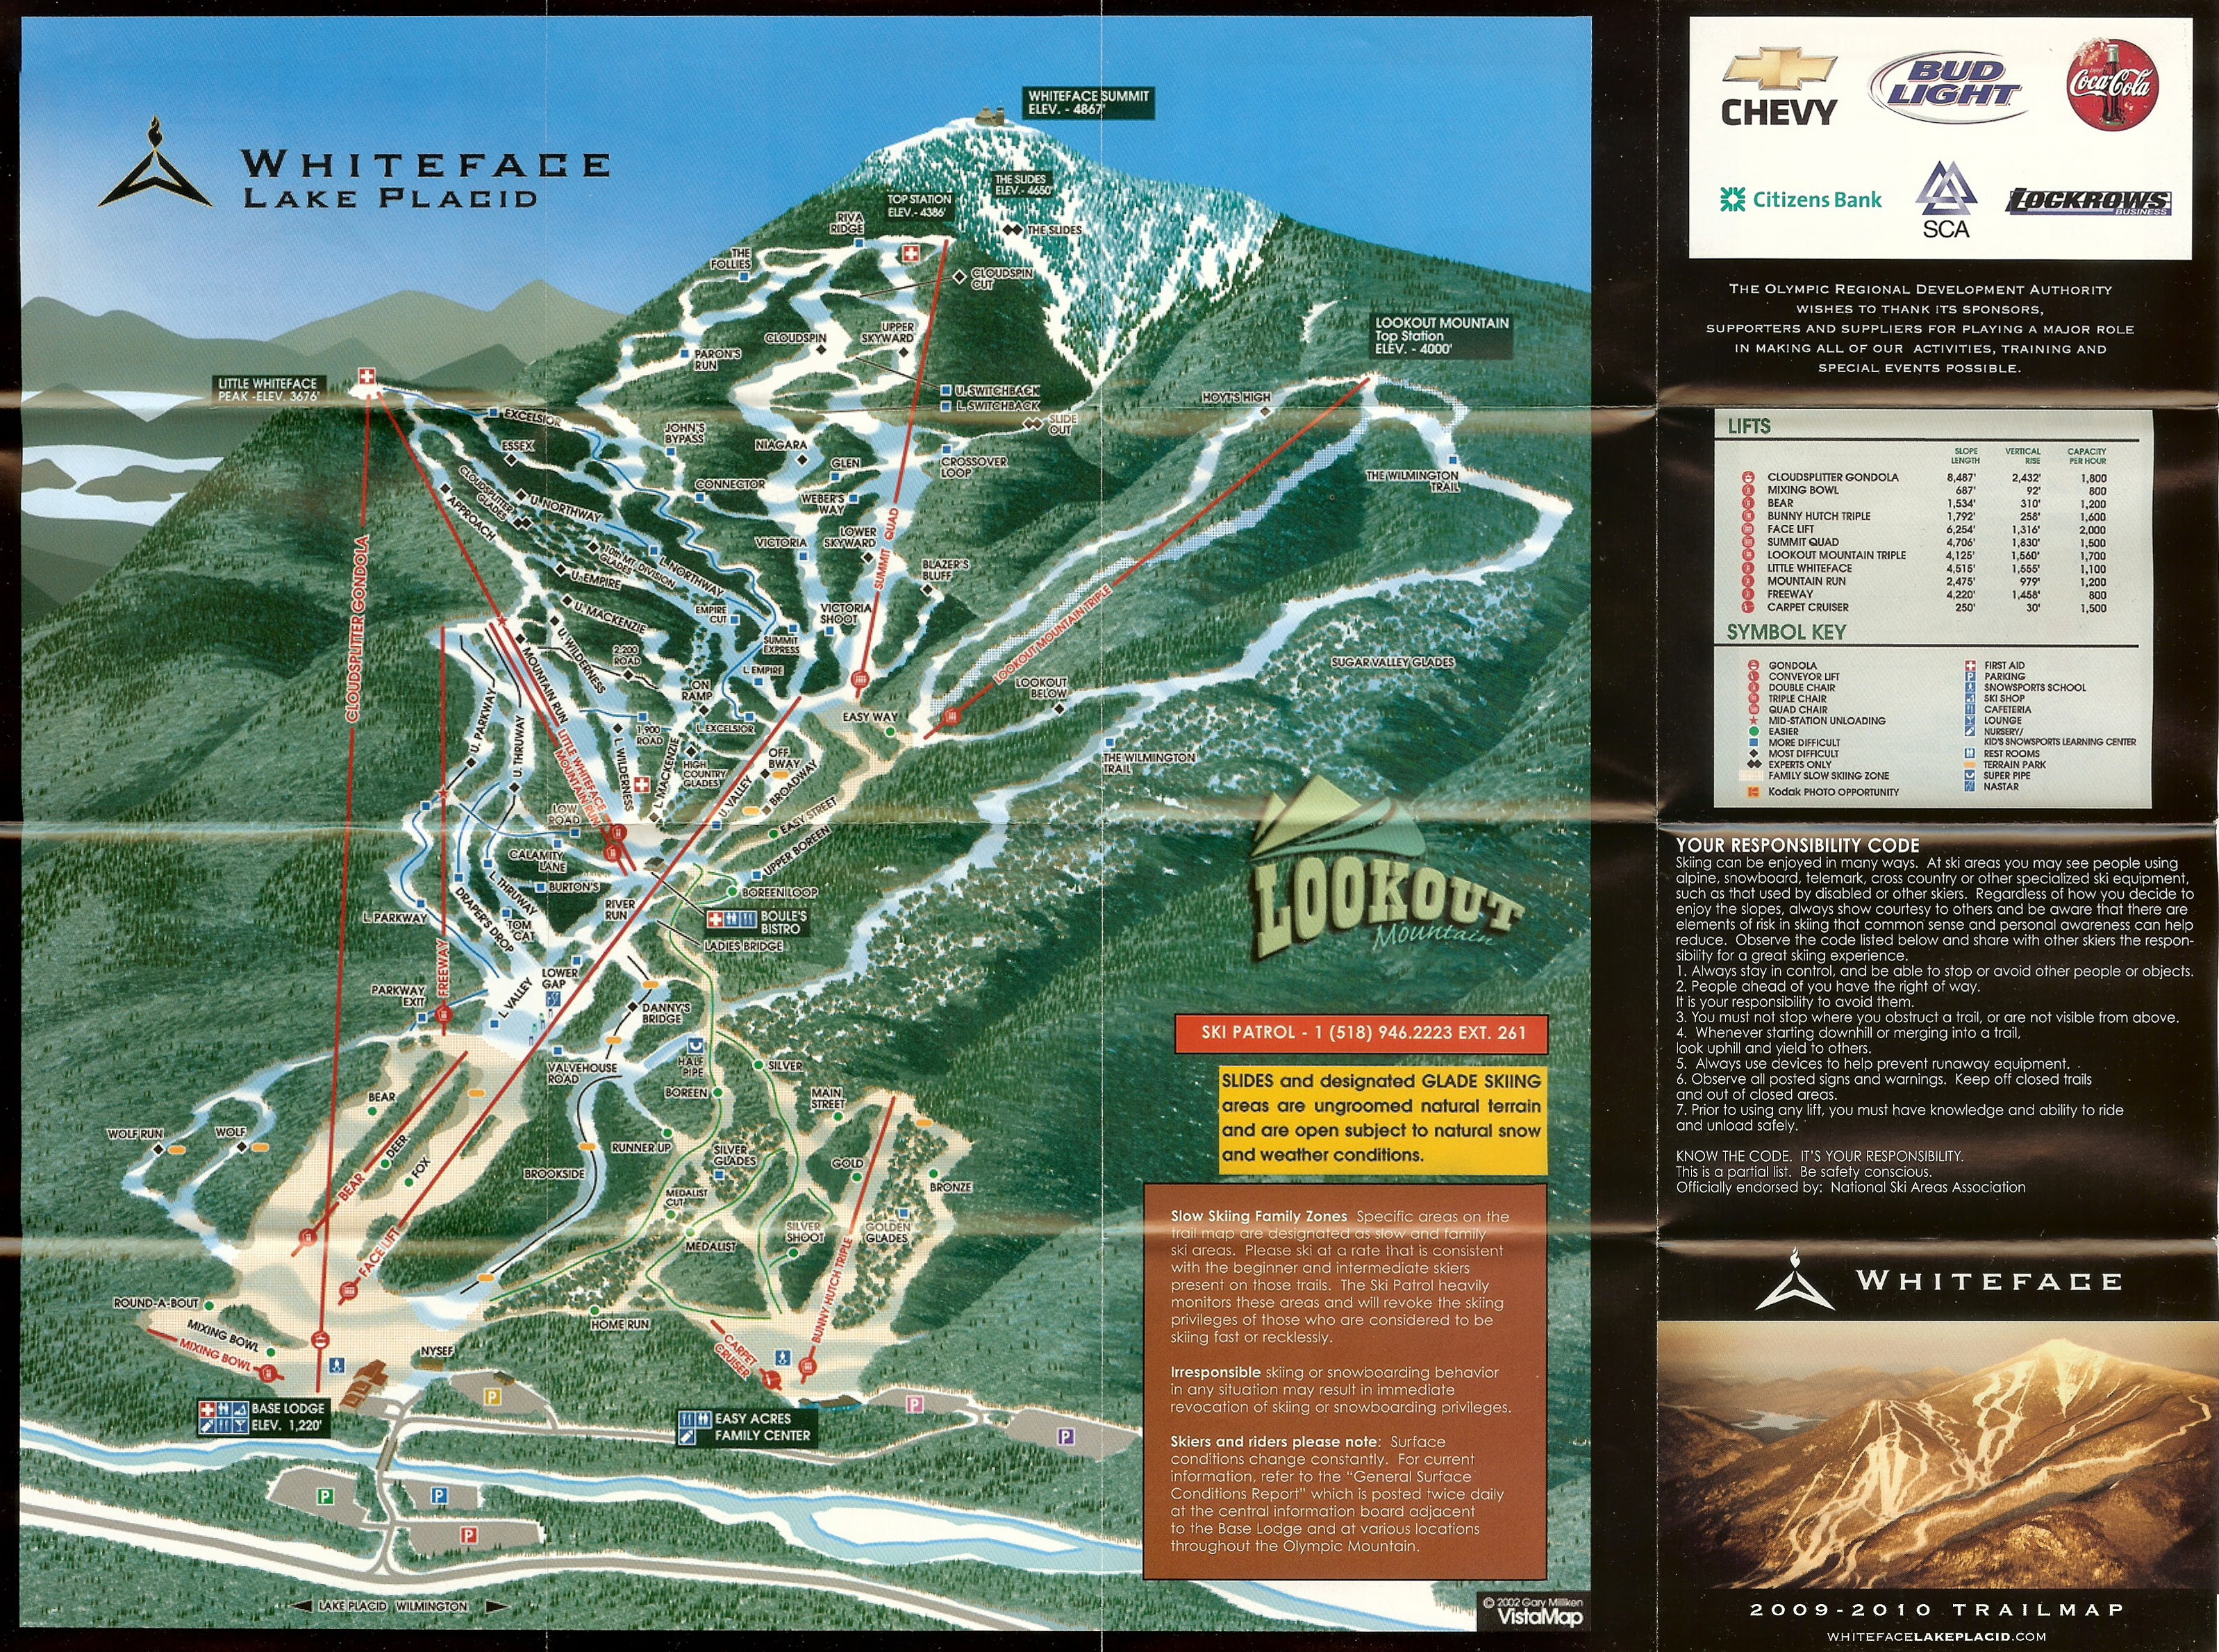 Whiteface Mountain - Lake Placid - SkiMap.org